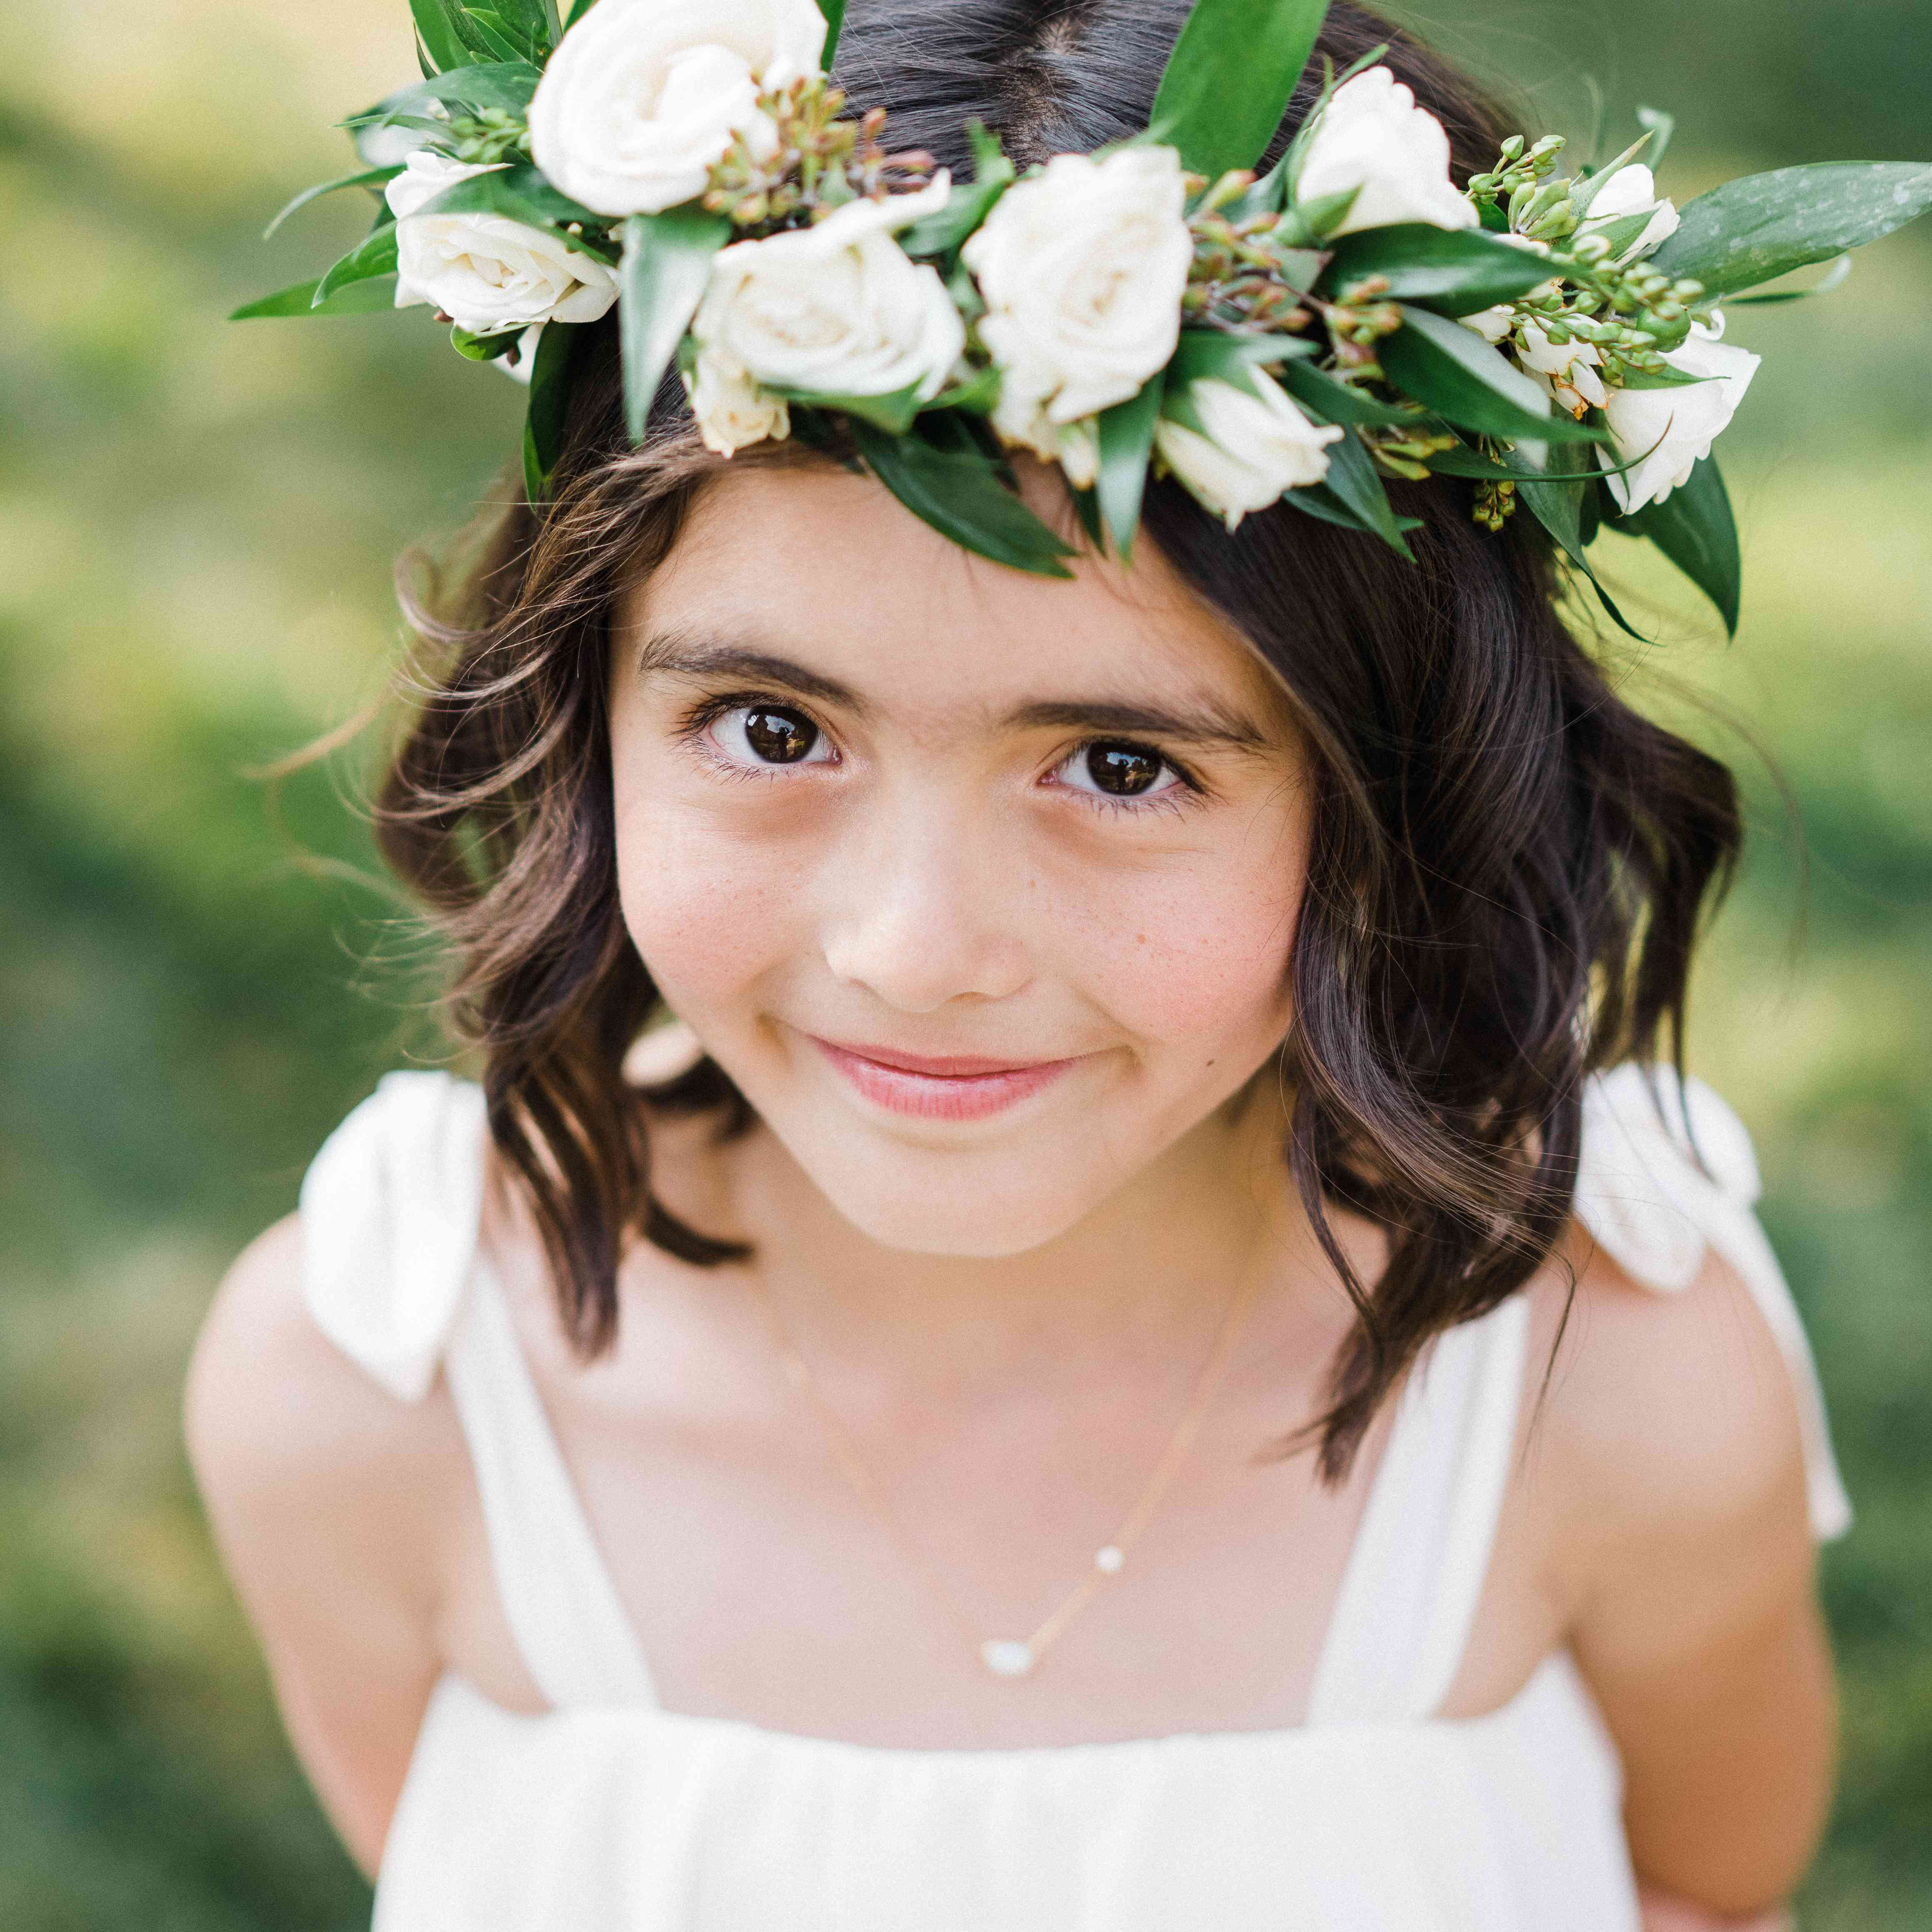 <p>Flower girl with flower crown</p><br><br>